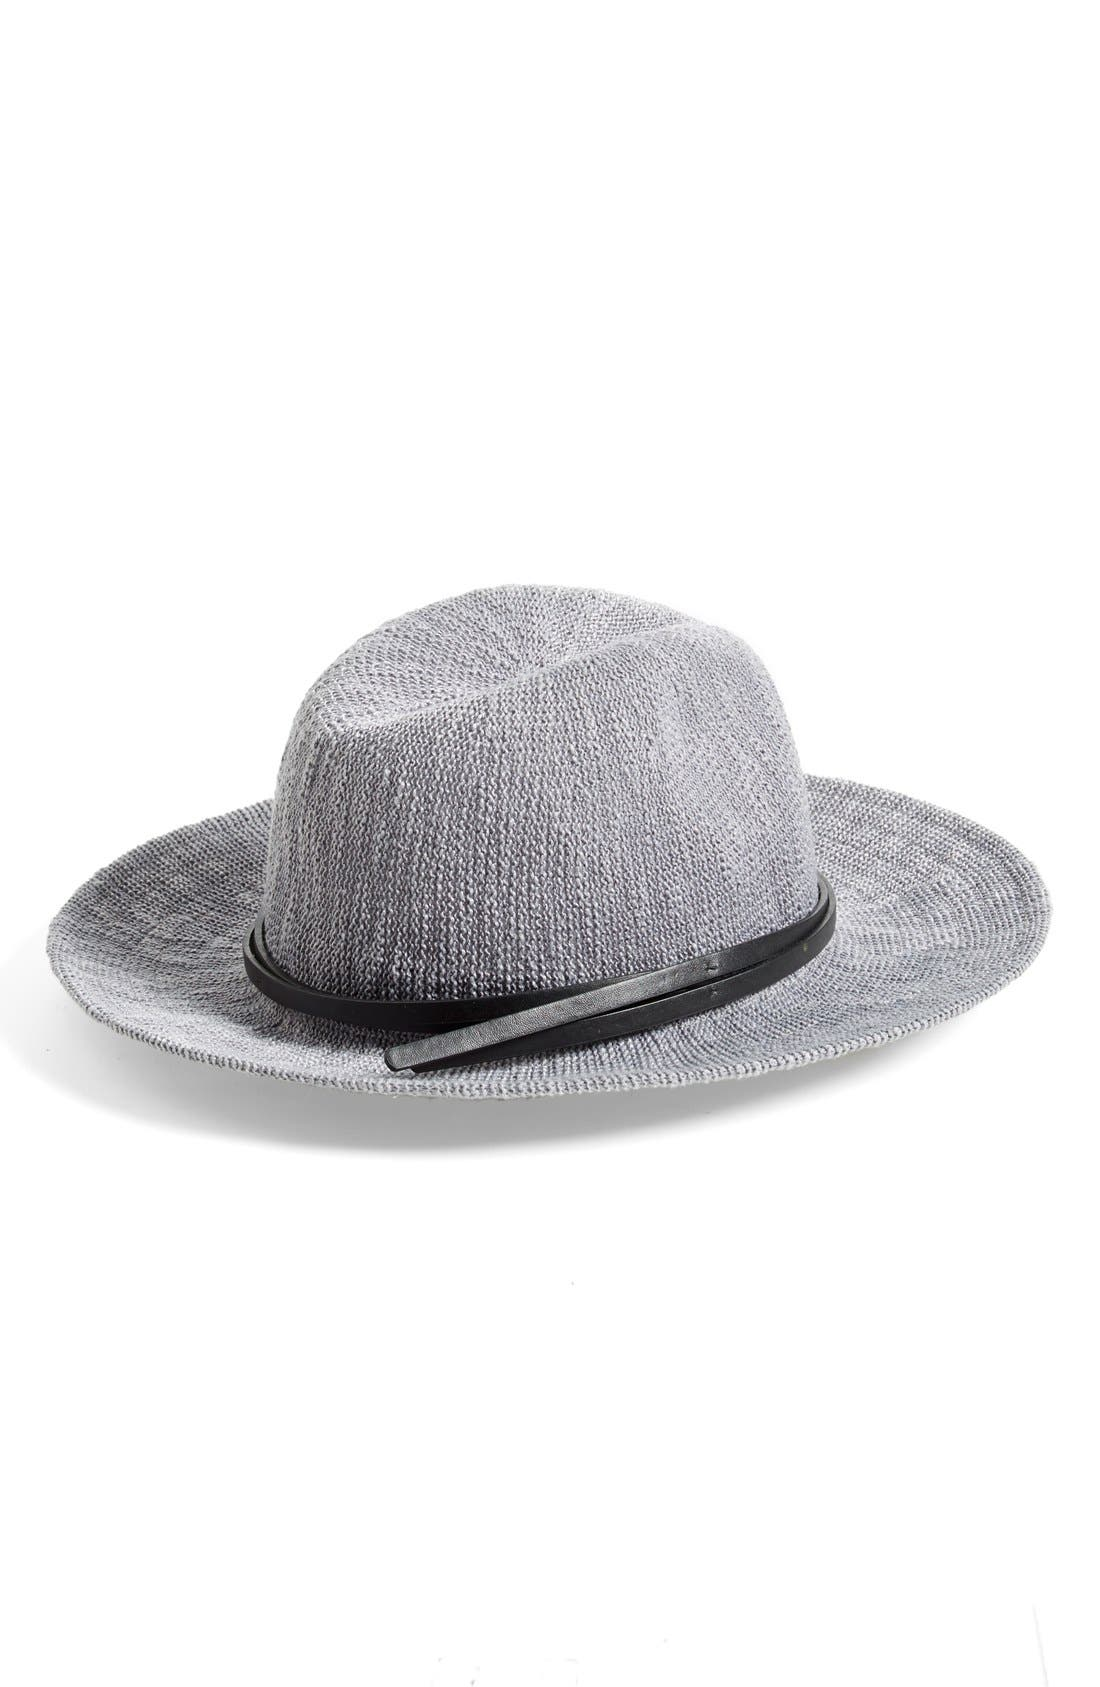 Main Image - Phase 3 Knit Wide Brim Hat